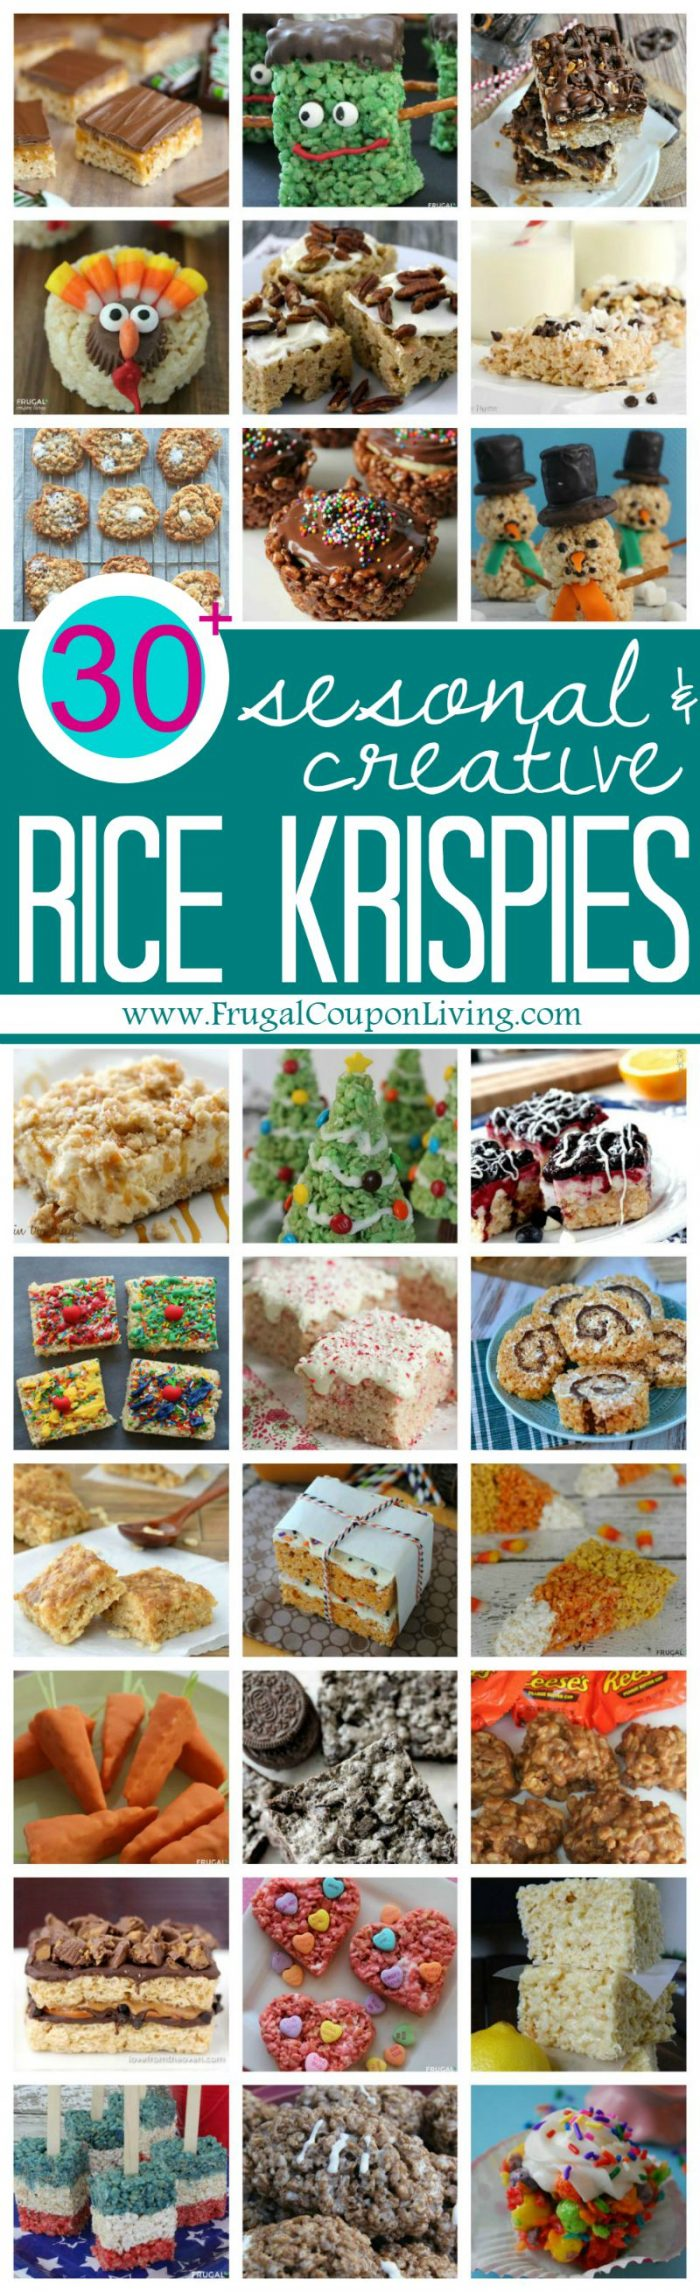 Rice krispie treats coupons